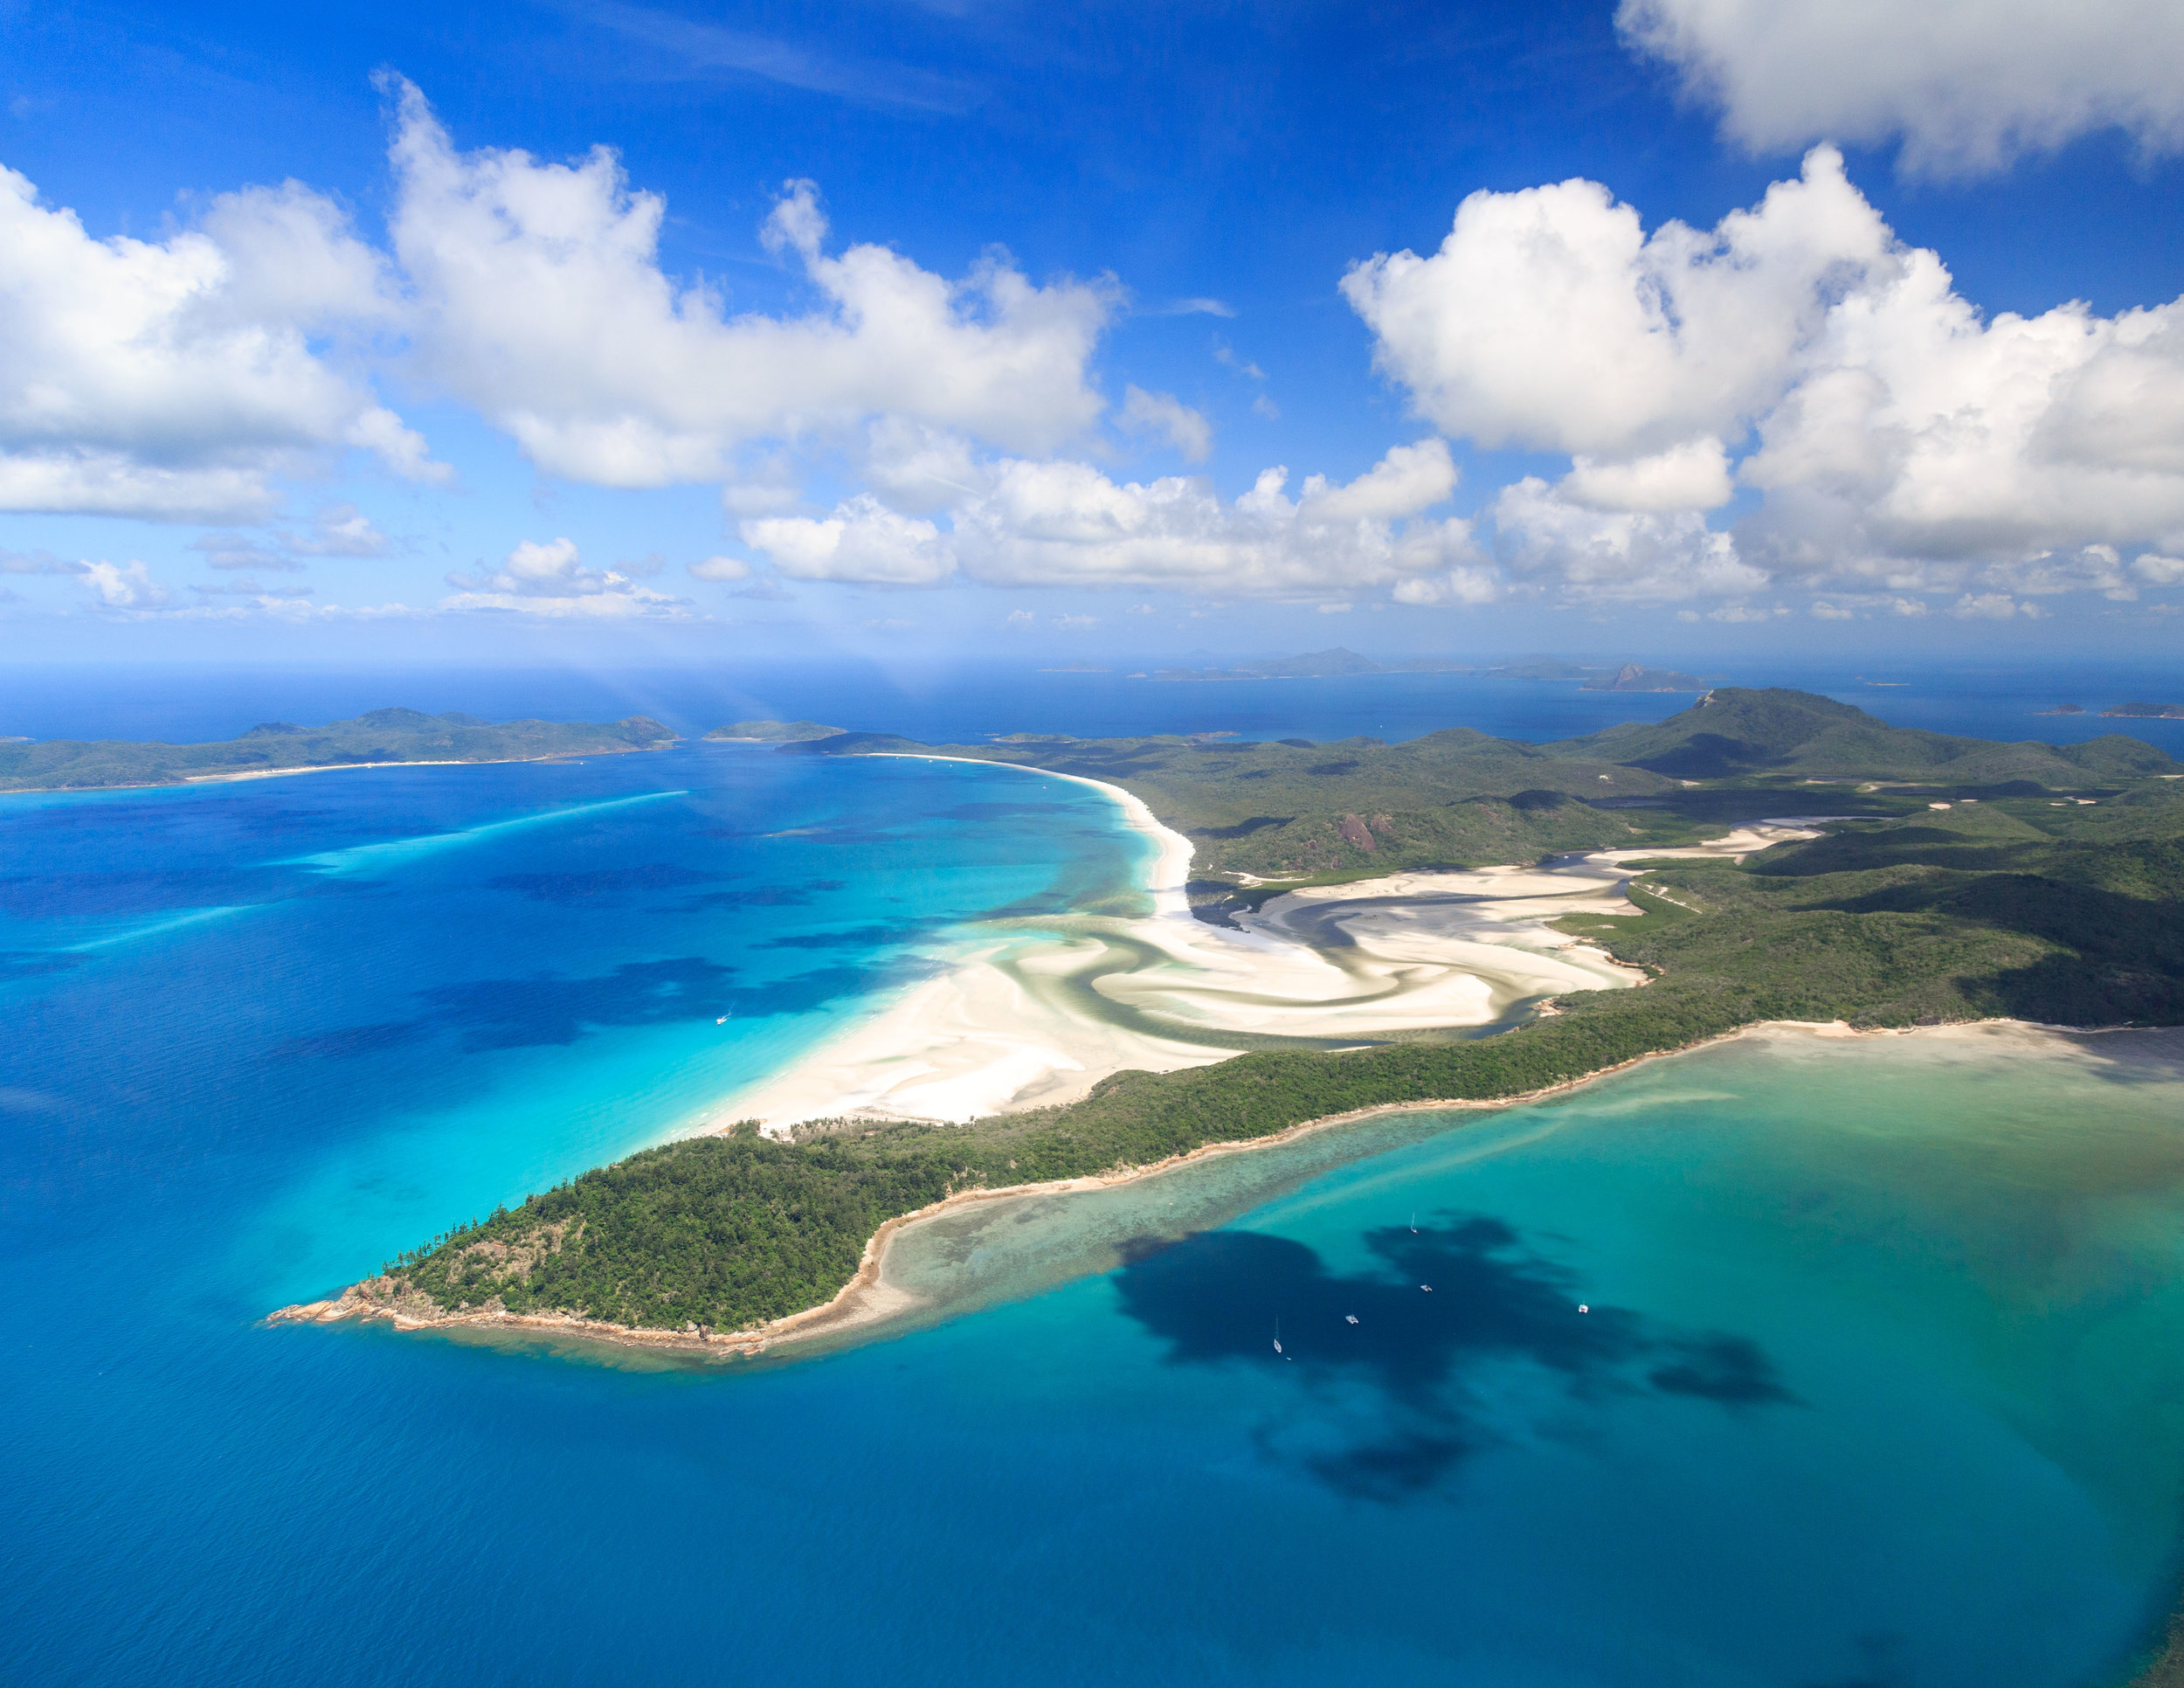 Prices in places such as the Whitsundays can sky rocket during public holidays and if you don't book in advance.